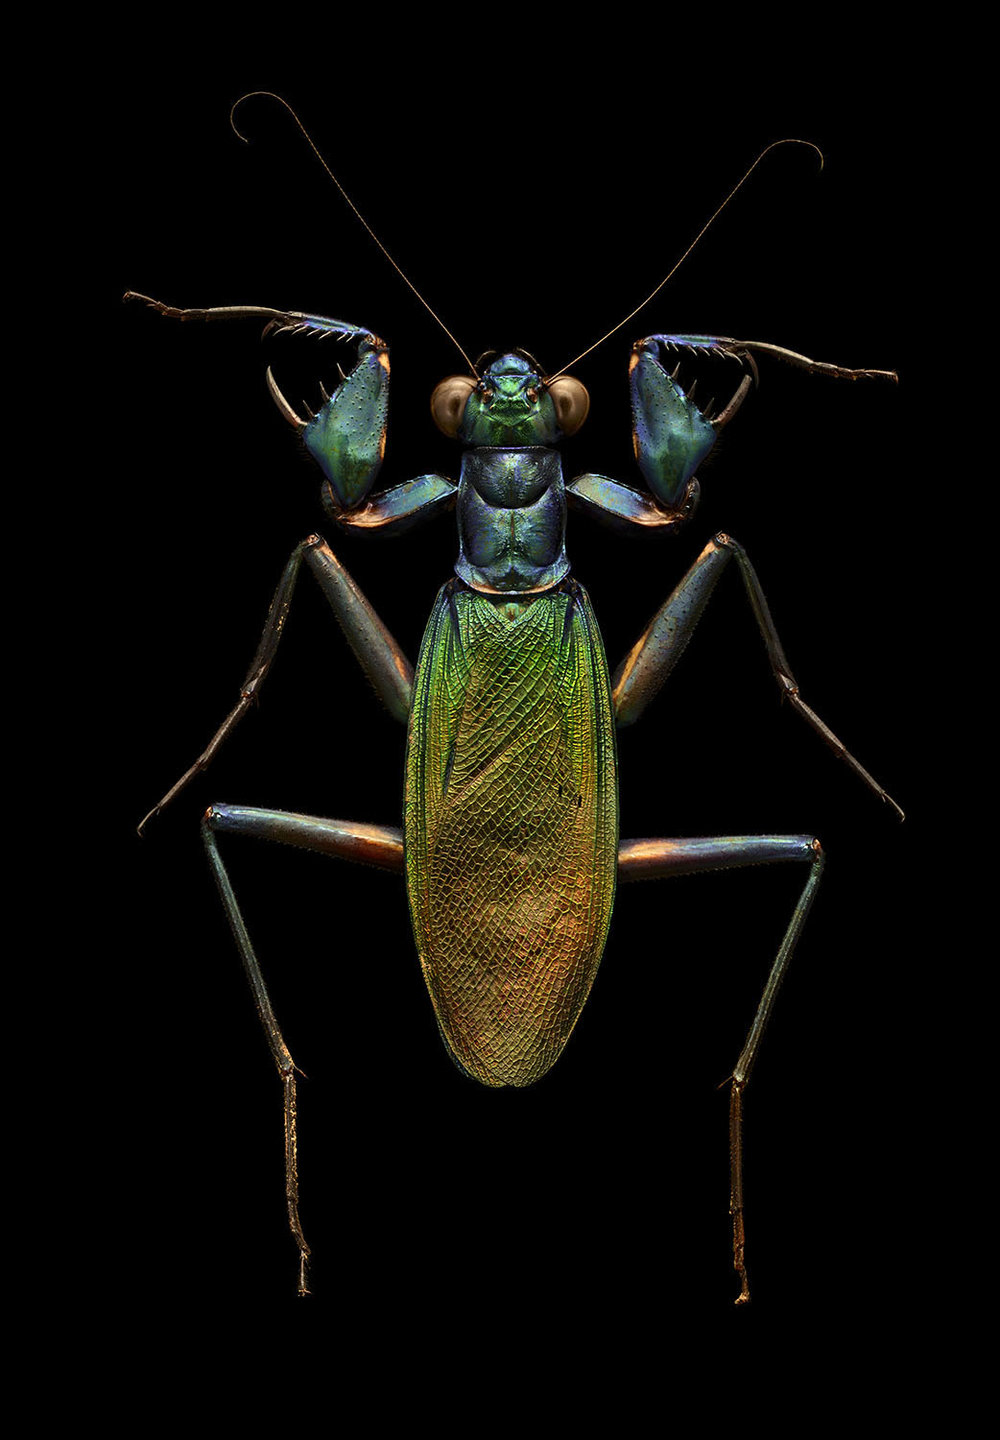 Iridescent Bark Mantis_5660MB.jpg